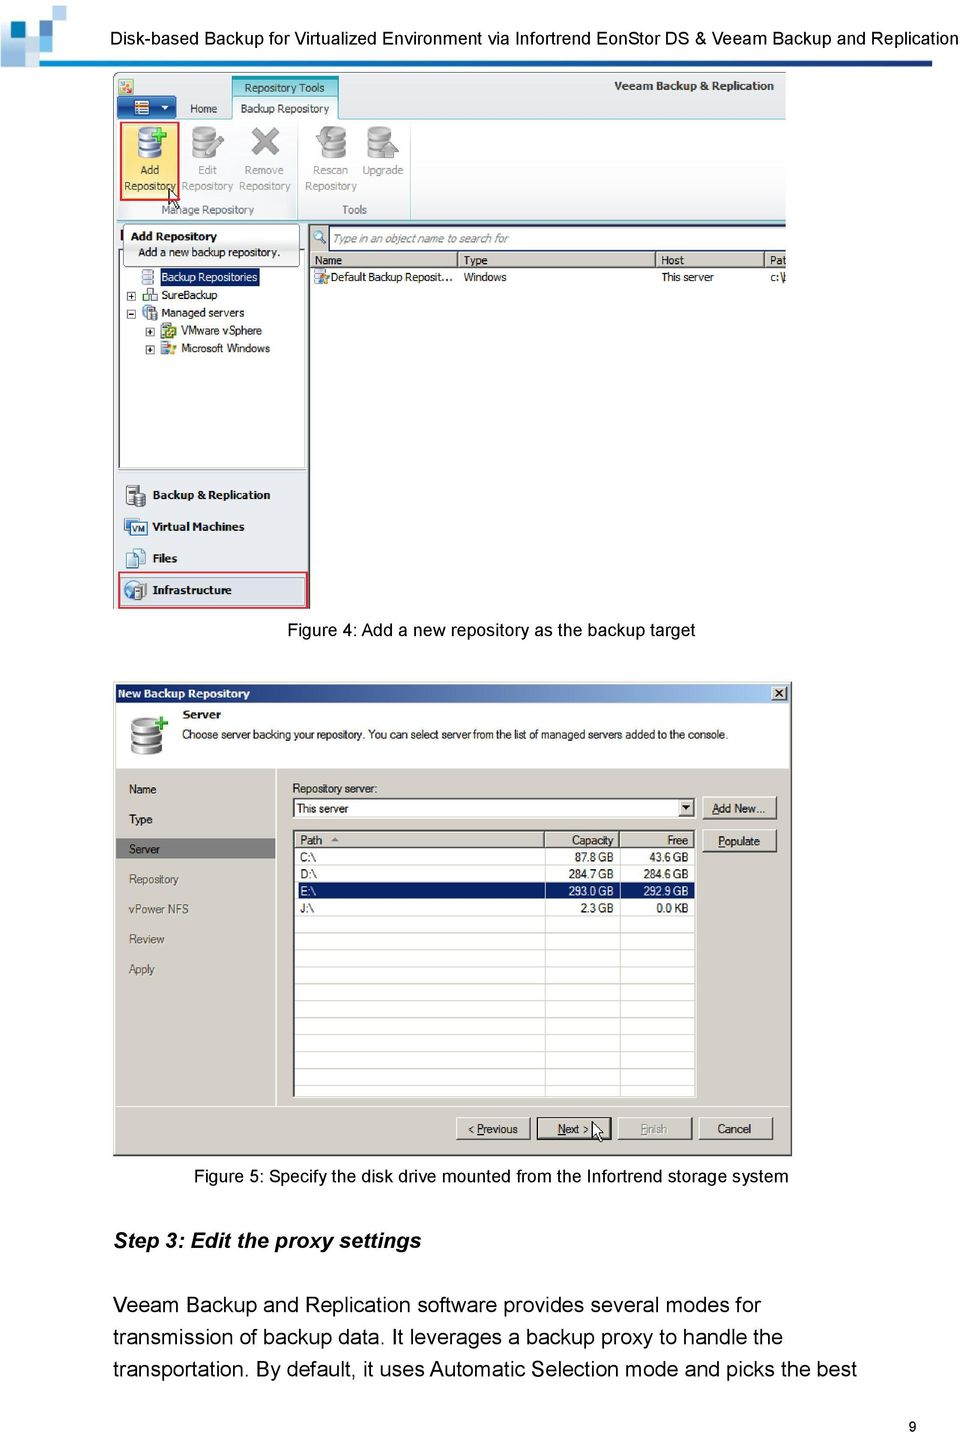 Replication software provides several modes for transmission of backup data.